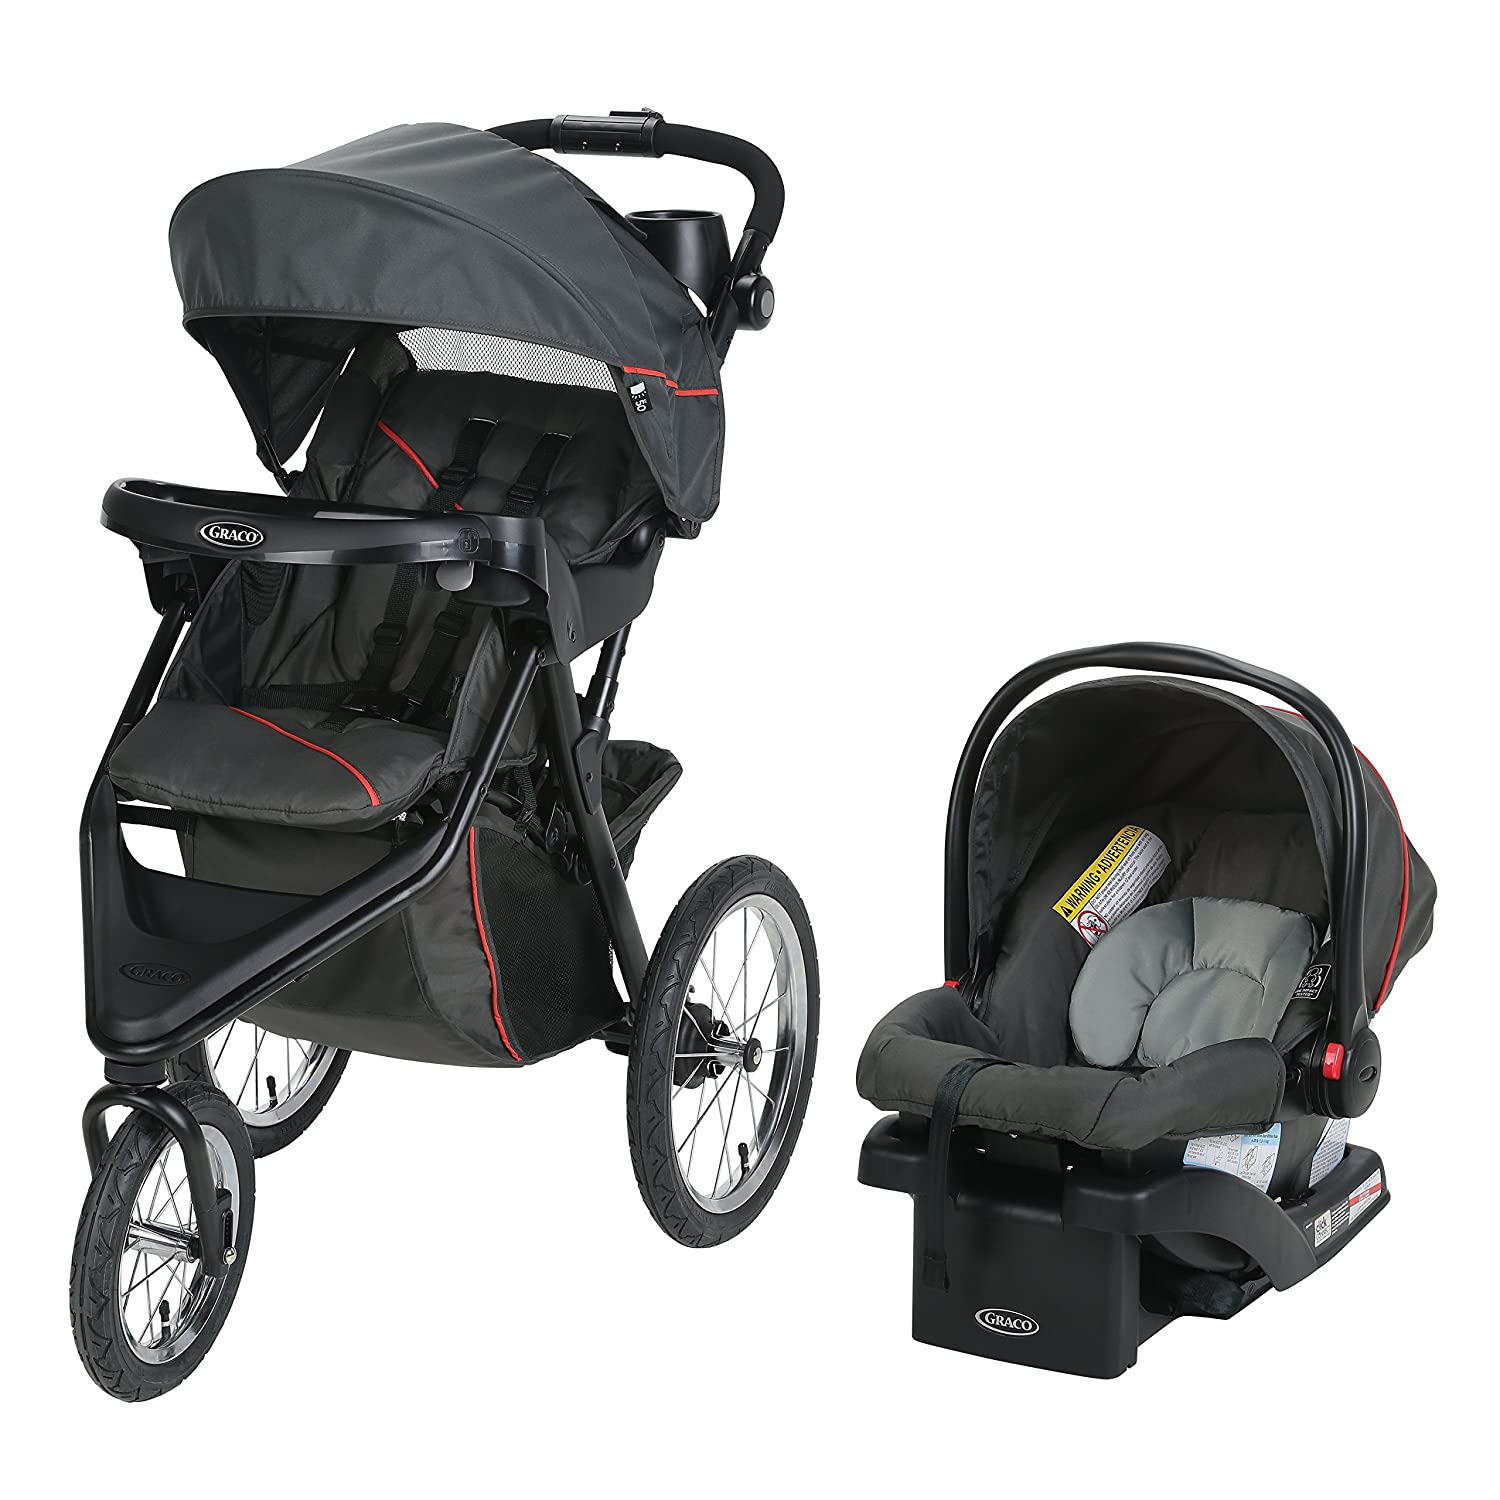 Graco Trax Jogger Travel System | Includes Trax Jogging Stroller and SnugRide 30 Infant Car Seat, Evanston